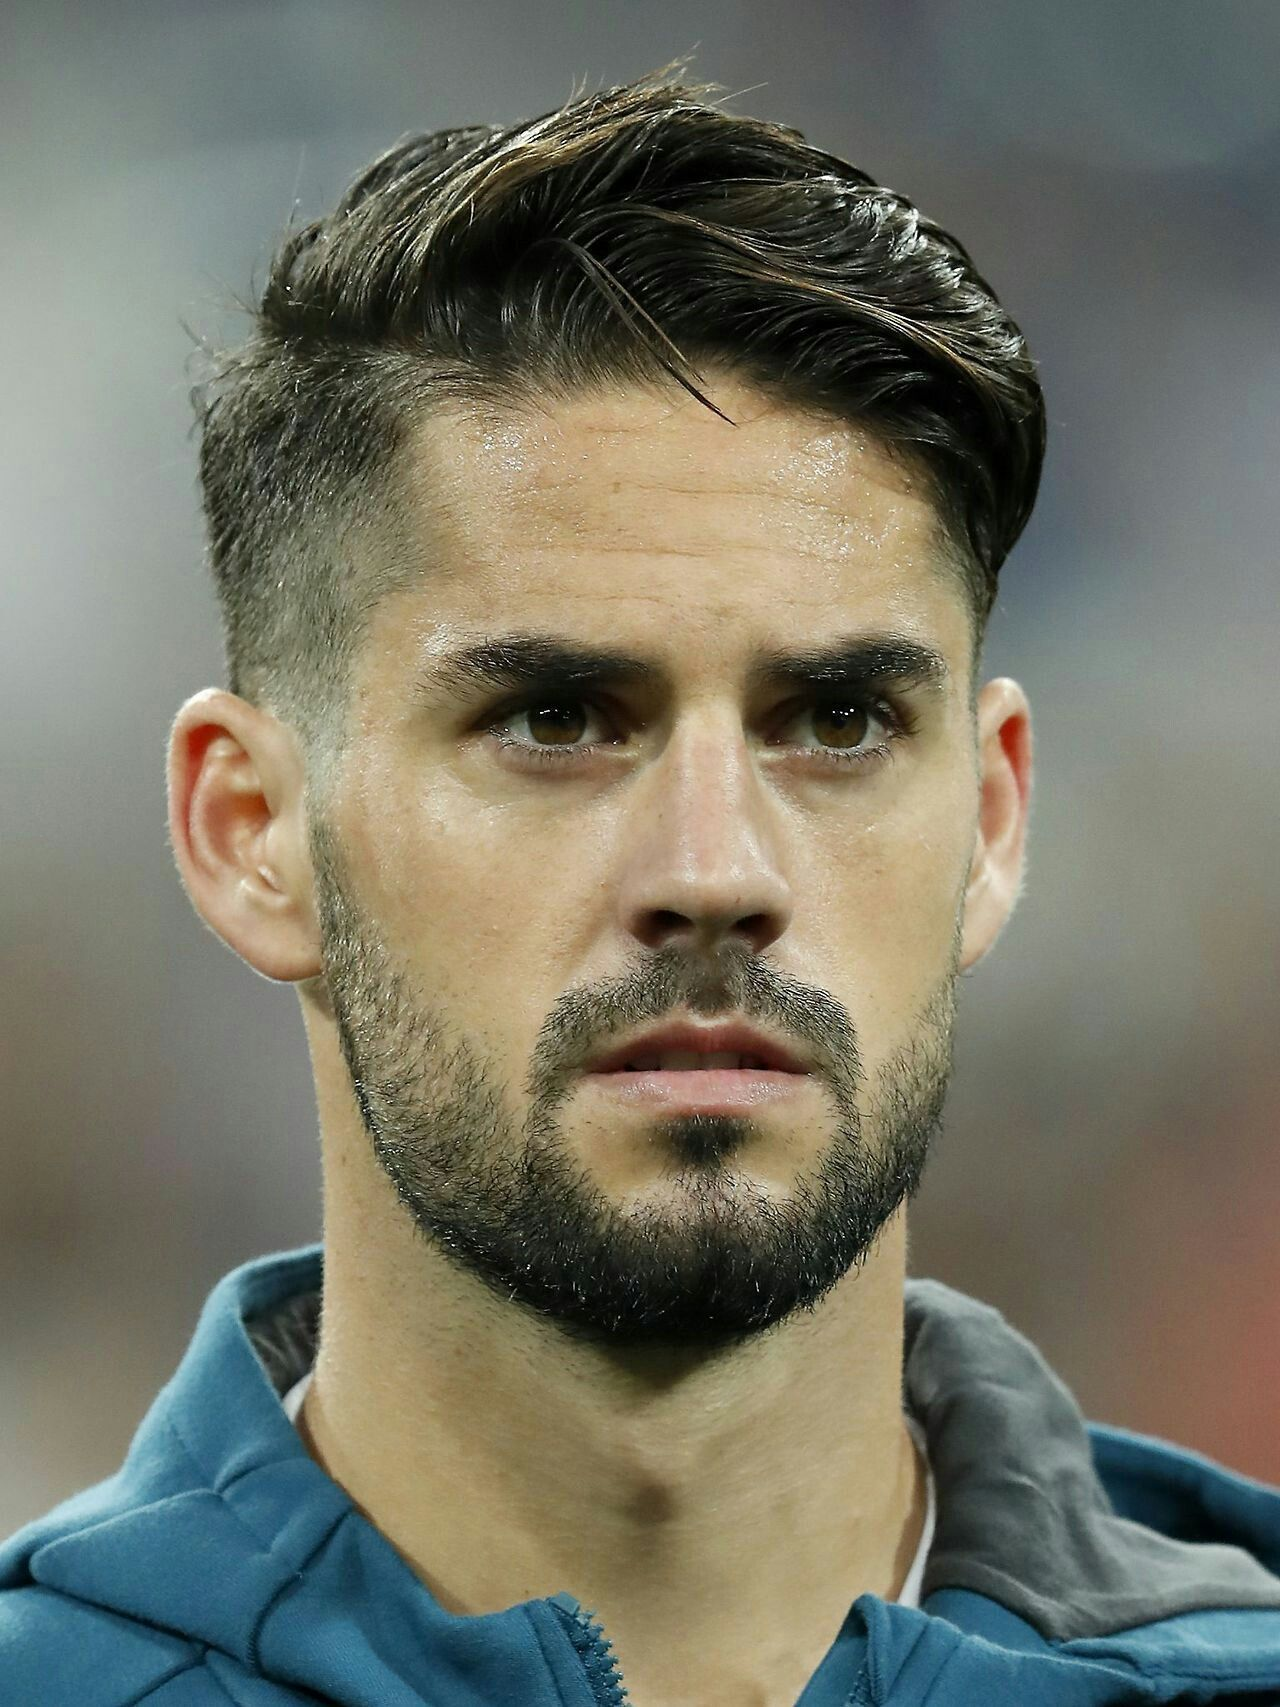 Isco Haircut 2018 | REAL | Isco, Soccer hairstyles, Soccer player ...